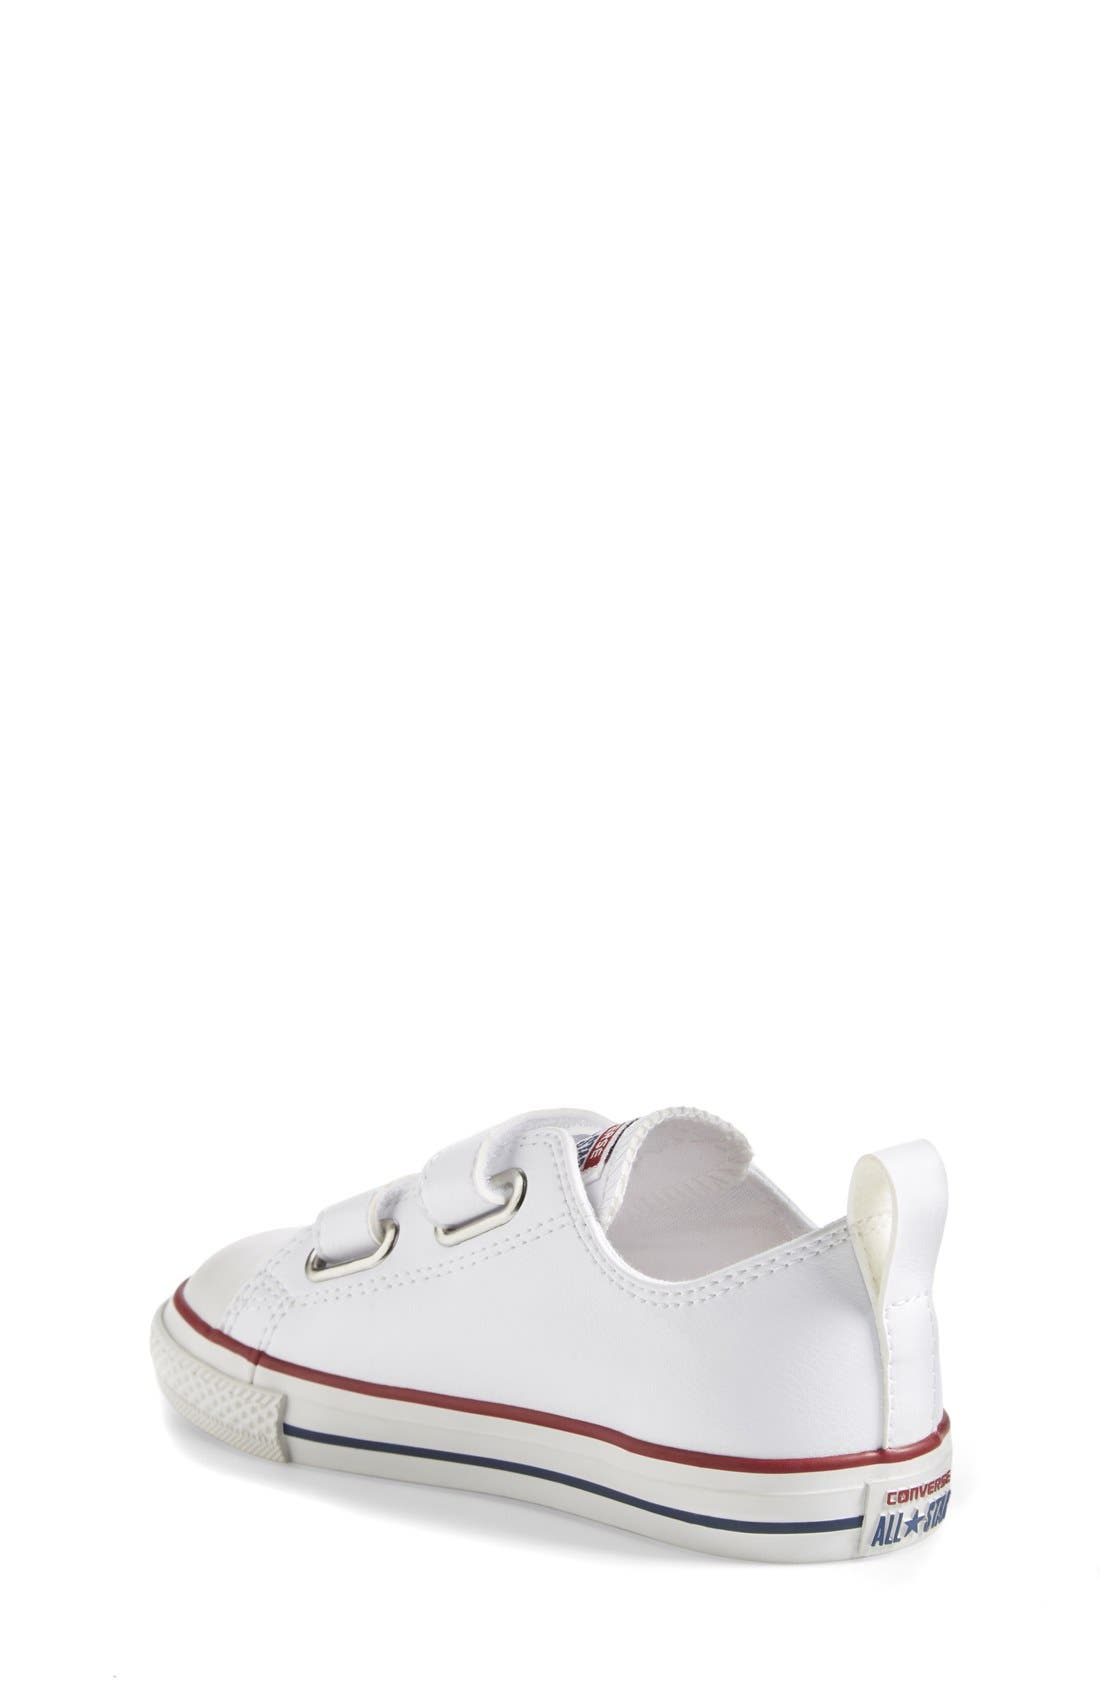 CONVERSE,                             Chuck Taylor<sup>®</sup> All Star<sup>®</sup> 2V Faux Leather Sneaker,                             Alternate thumbnail 2, color,                             WHITE